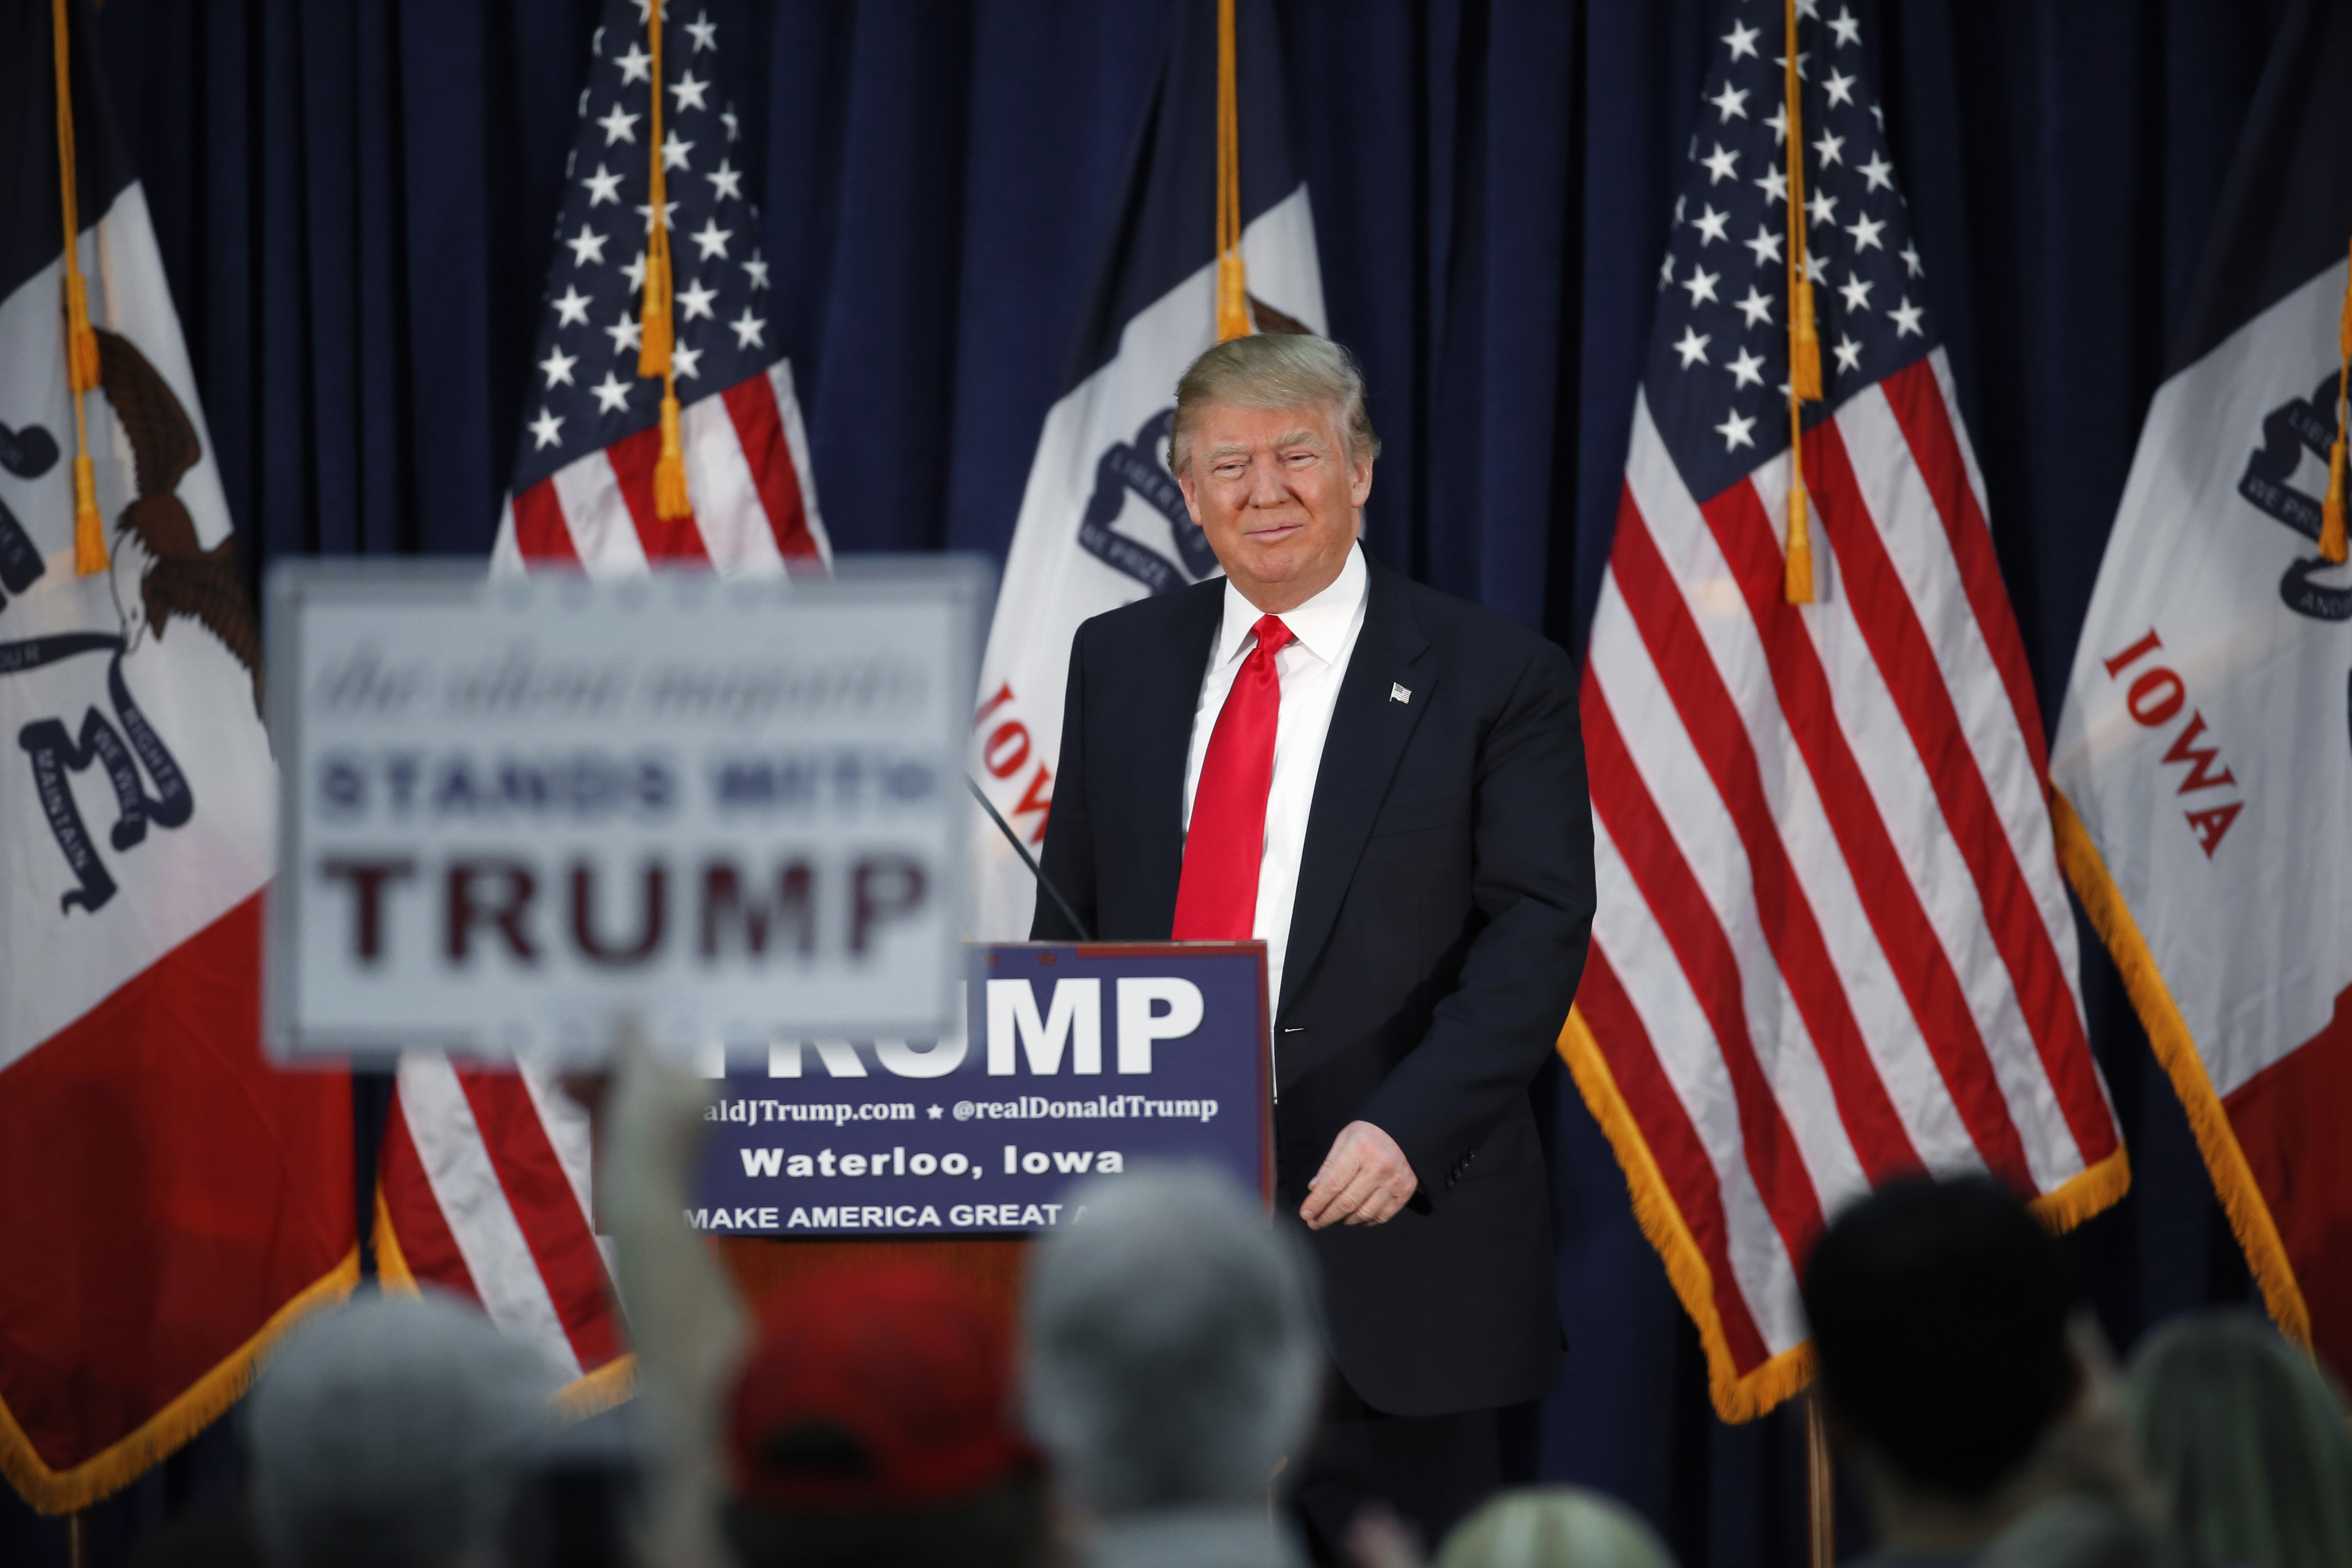 Republican presidential candidate Donald Trump speaks during a campaign event, Monday, Feb. 1, 2016 in Waterloo, Iowa. (AP Photo/Paul Sancya)